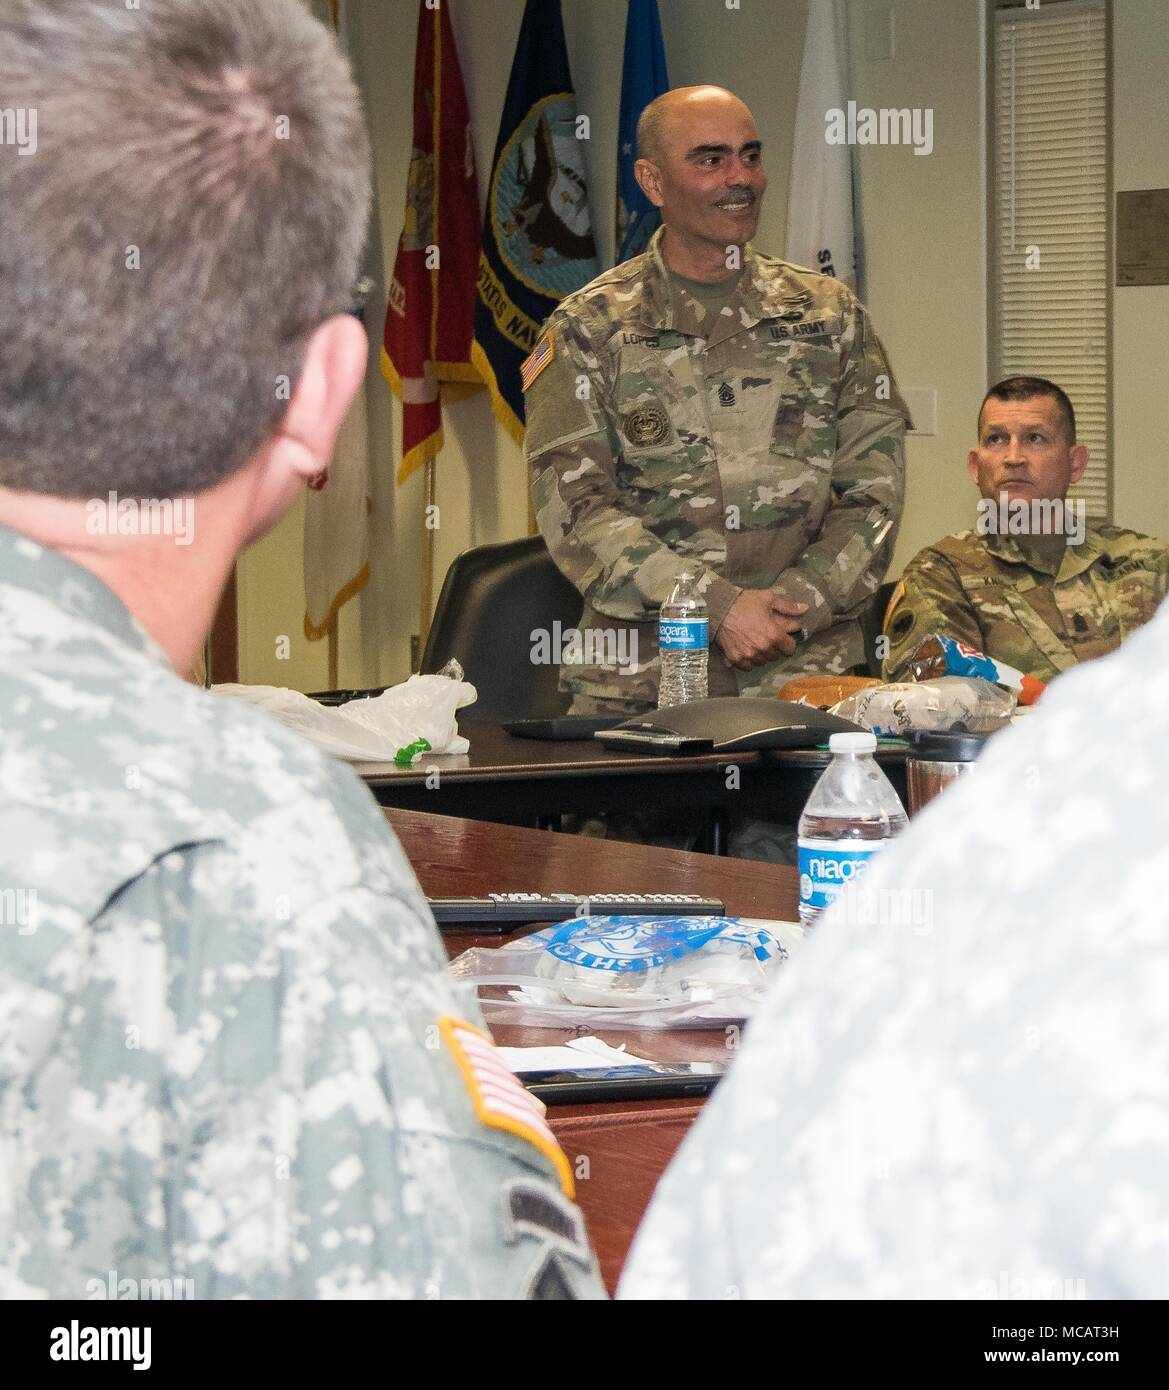 U.S. Army Command Sgt. Maj. Carlos O. Lopes, command sergeant major, 143d Sustainment Command (Expeditionary), speaks with battalion and brigade sergeants major and command sergeants major about their role in individual and collective training during a Mission Training Brief conducted Feb. 3, 2018, in Orlando, Fla. Lopes reminded his fellow sergeants major that they must coach and mentor noncommissioned officers so they may develop cohesive teams that have mastered the fundamentals of Pre-Combat Checks, Pre-Combat Inspections and Troop Leadership Procedures. (U.S. Army photo by Sgt. John L. Ca - Stock Image